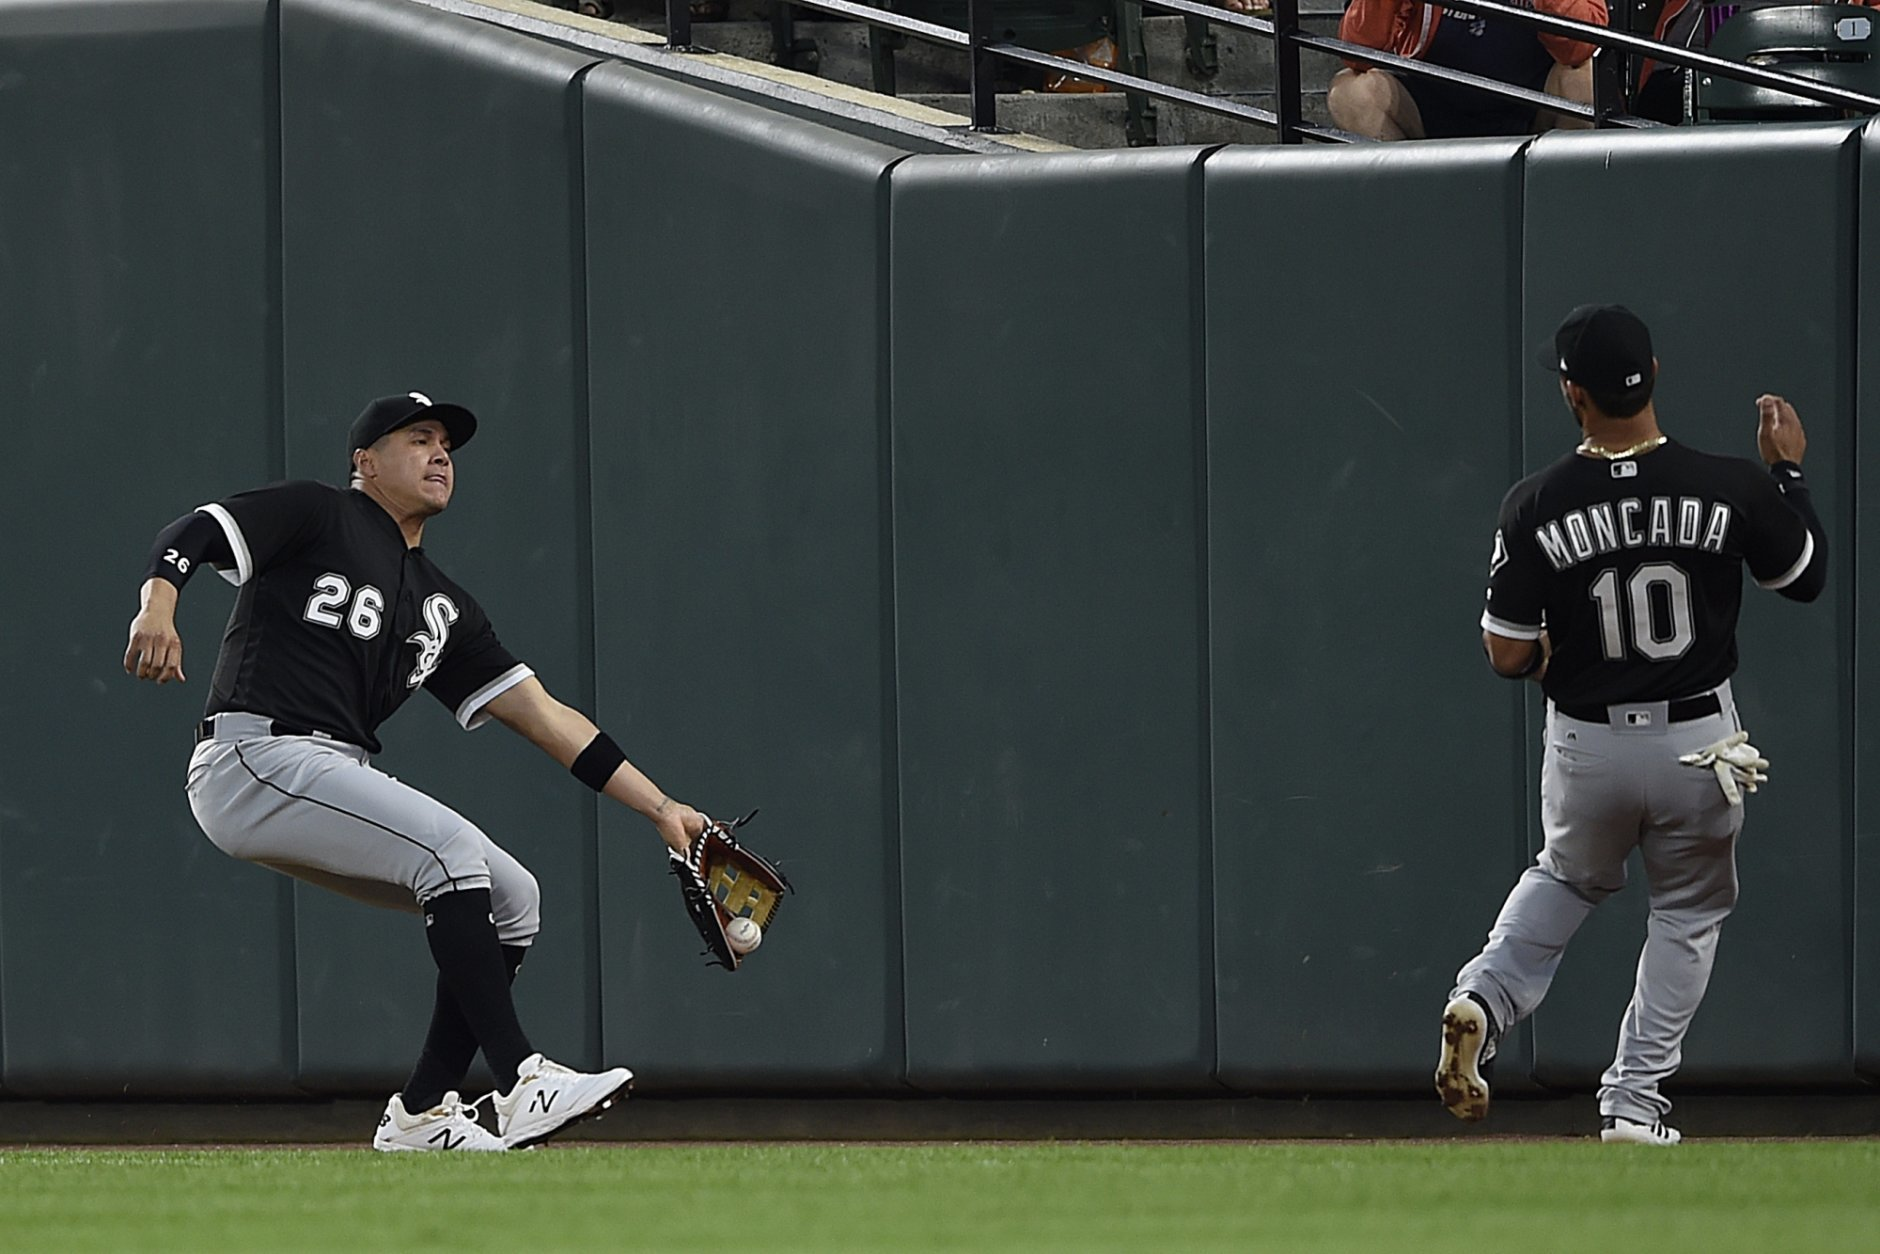 Chicago White Sox right fielder Avisail Garcia, left, is unable to hold onto a foul ball hit by Baltimore Orioles' Cedric Mullins in the first inning of a baseball game, Saturday, Sept. 15, 2018, in Baltimore. (AP Photo/Gail Burton)